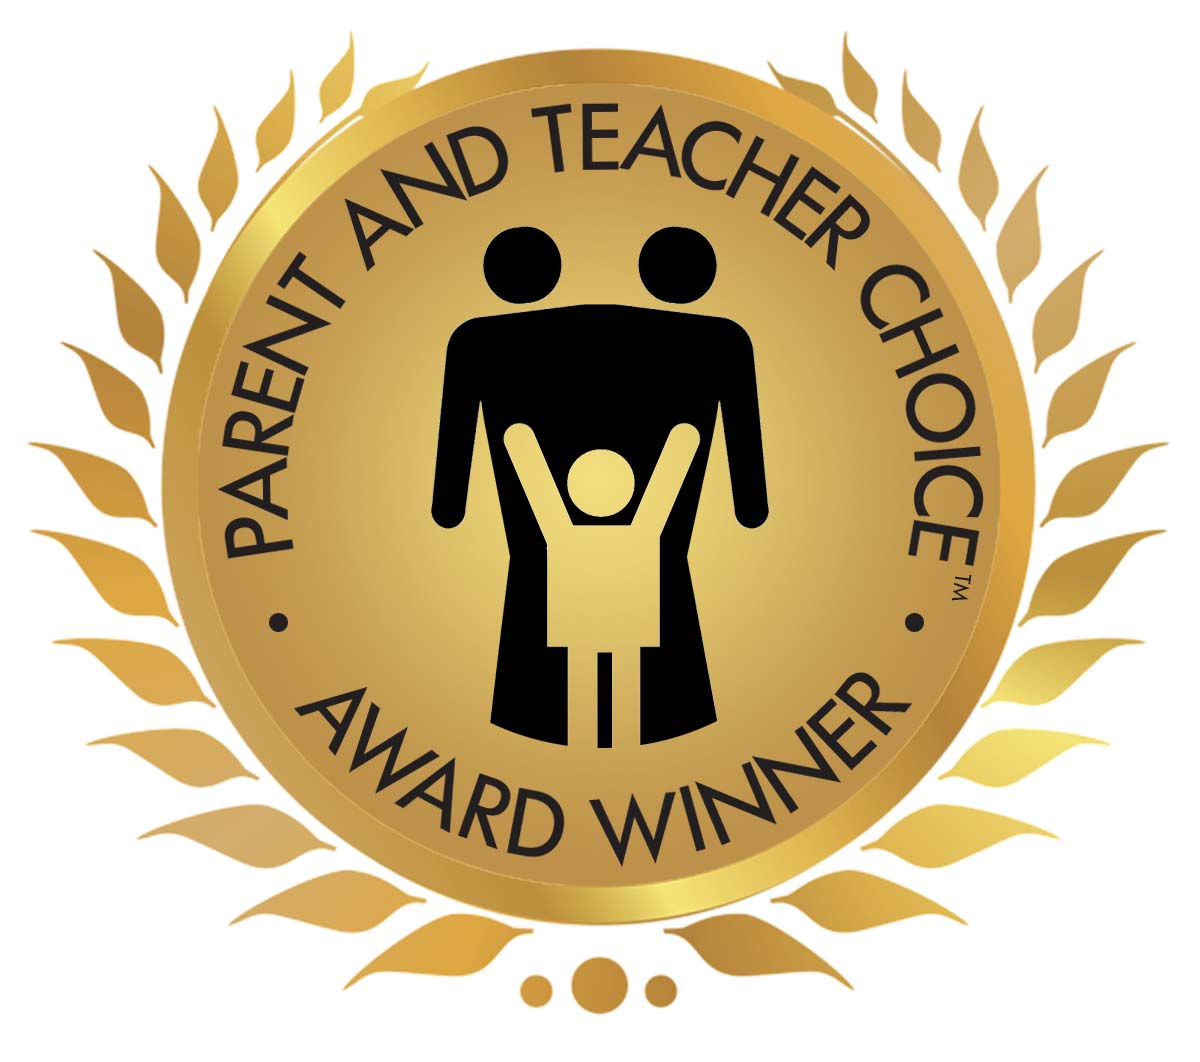 Parent and Teacher Choice Award - a gold circle with leaves surrounding it.